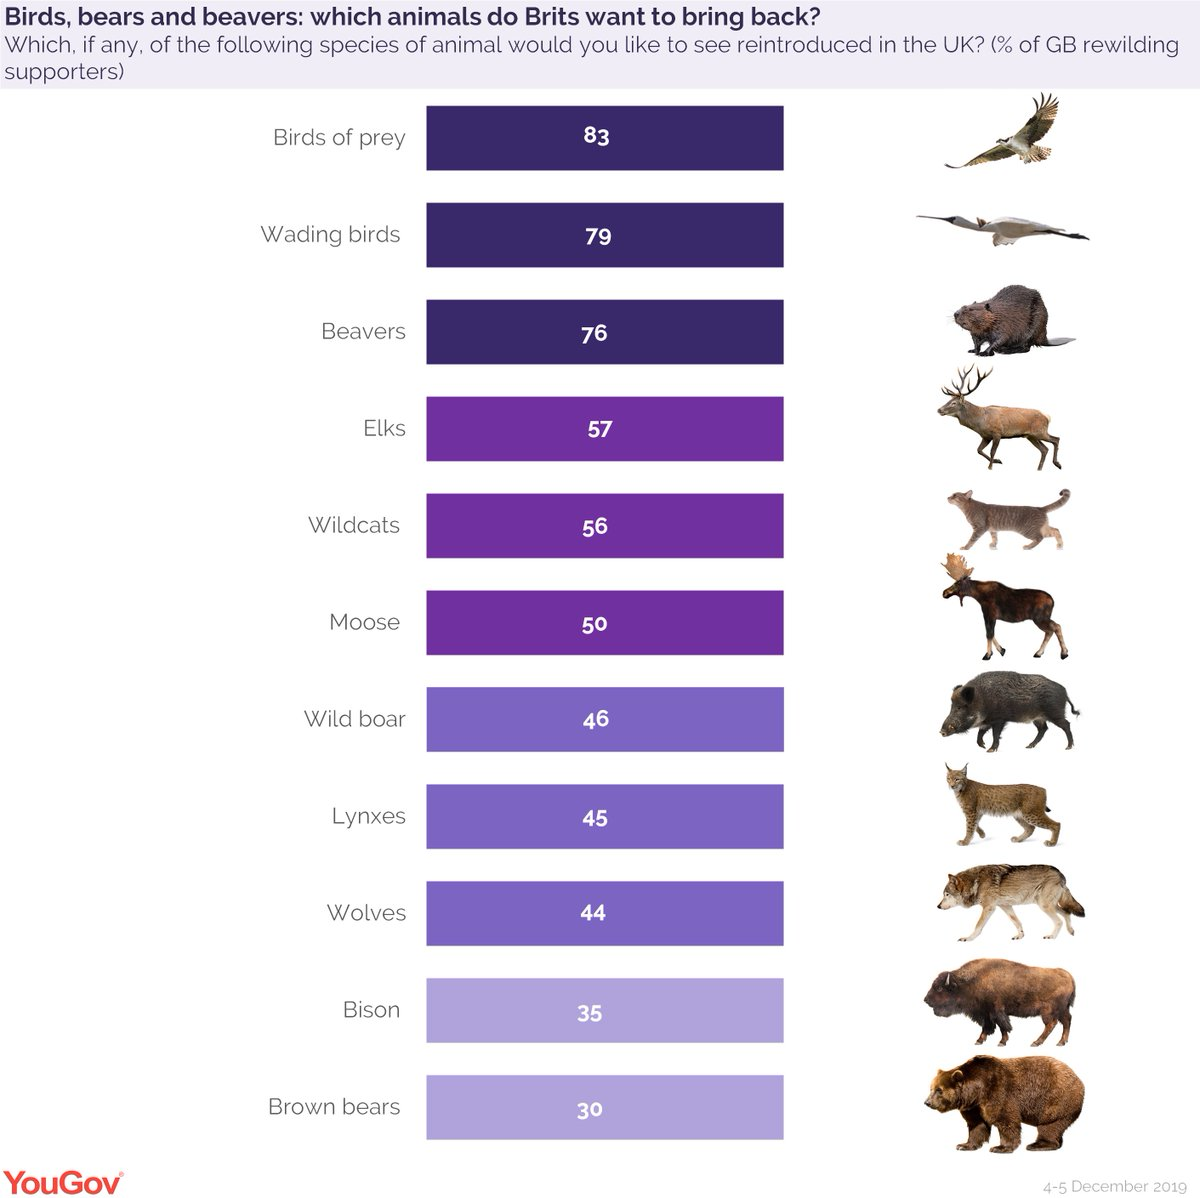 82% of Brits want extinct species to be returned to the UK.  Support for the following animals to be reintroduced:  Birds of prey 83% Wading birds 79% Beavers 76% Elks 57% Wildcats 56% Moose 50% Wild boar 46% Lynxes 45% Wolves 44% Bison 35% Brown bears 30%